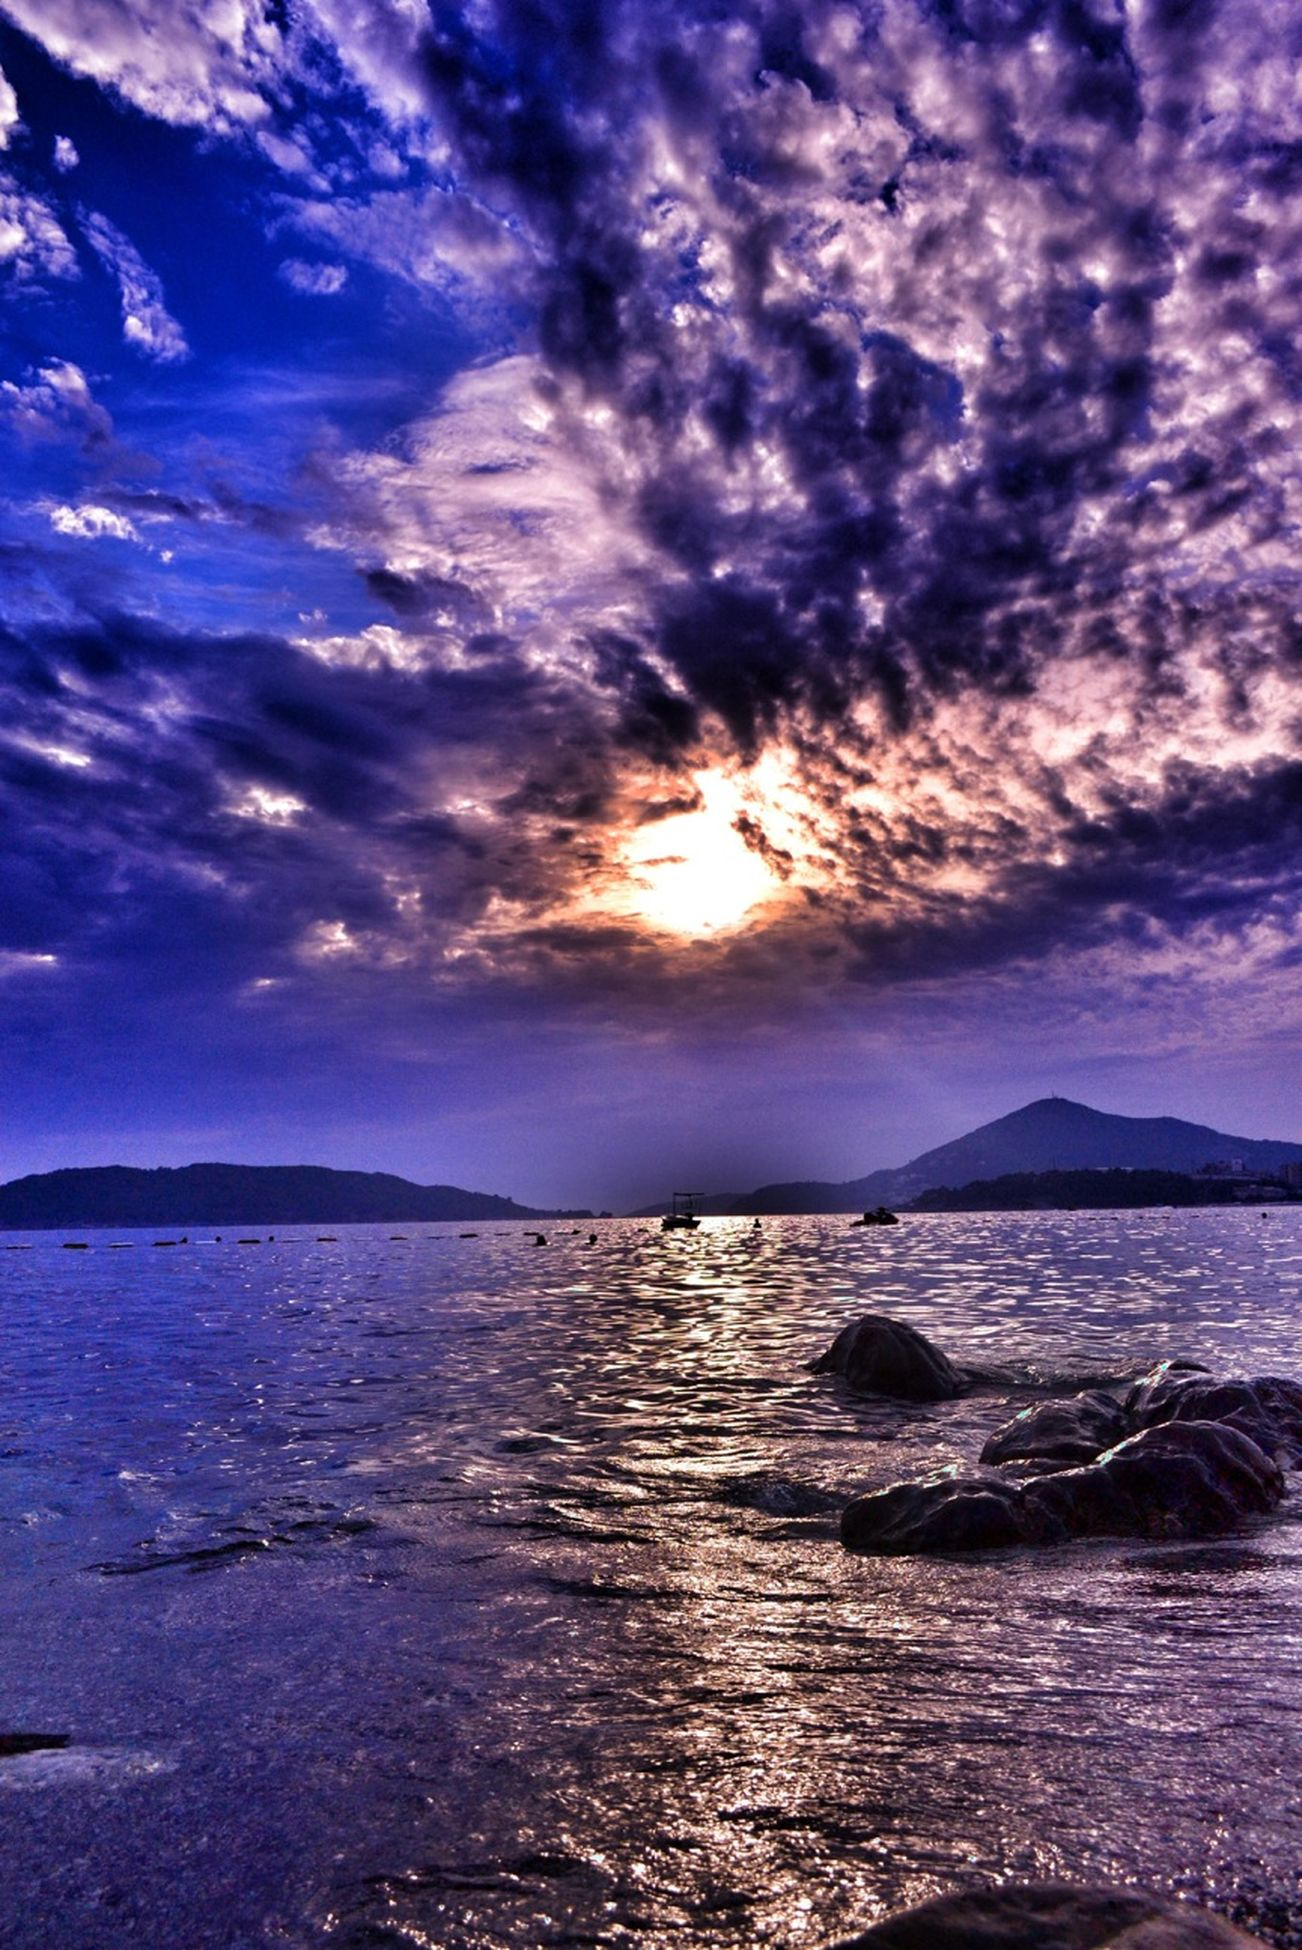 water, sea, sky, scenics, sunset, tranquil scene, beauty in nature, tranquility, cloud - sky, beach, sun, nature, horizon over water, idyllic, cloud, shore, silhouette, cloudy, sunlight, reflection